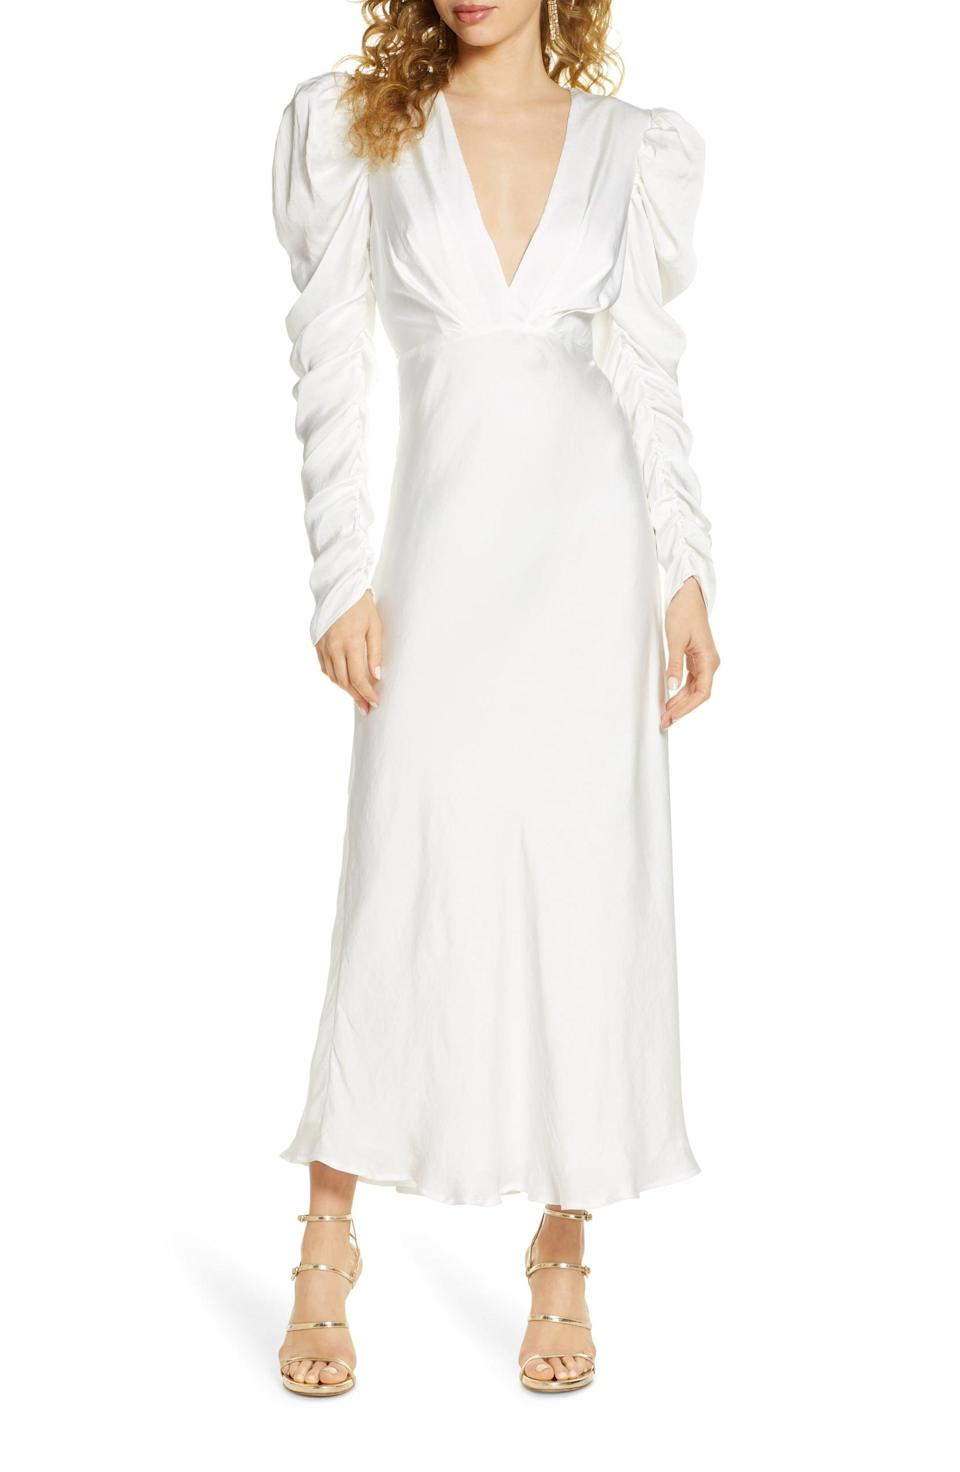 """<p>If you want something that doesn't touch the ground, we adore this <a href=""""https://www.popsugar.com/buy/Bardot-Zaria-Long-Sleeve-Gown-582315?p_name=Bardot%20Zaria%20Long-Sleeve%20Gown&retailer=shop.nordstrom.com&pid=582315&price=129&evar1=fab%3Aus&evar9=47551973&evar98=https%3A%2F%2Fwww.popsugar.com%2Fphoto-gallery%2F47551973%2Fimage%2F47552368%2FBardot-Zaria-Long-Sleeve-Gown&list1=shopping%2Cwedding%2Cbride%2Cwedding%20dresses%2Cfashion%20shopping%2Cbest%20of%202020&prop13=api&pdata=1"""" class=""""link rapid-noclick-resp"""" rel=""""nofollow noopener"""" target=""""_blank"""" data-ylk=""""slk:Bardot Zaria Long-Sleeve Gown"""">Bardot Zaria Long-Sleeve Gown</a> ($129).</p>"""